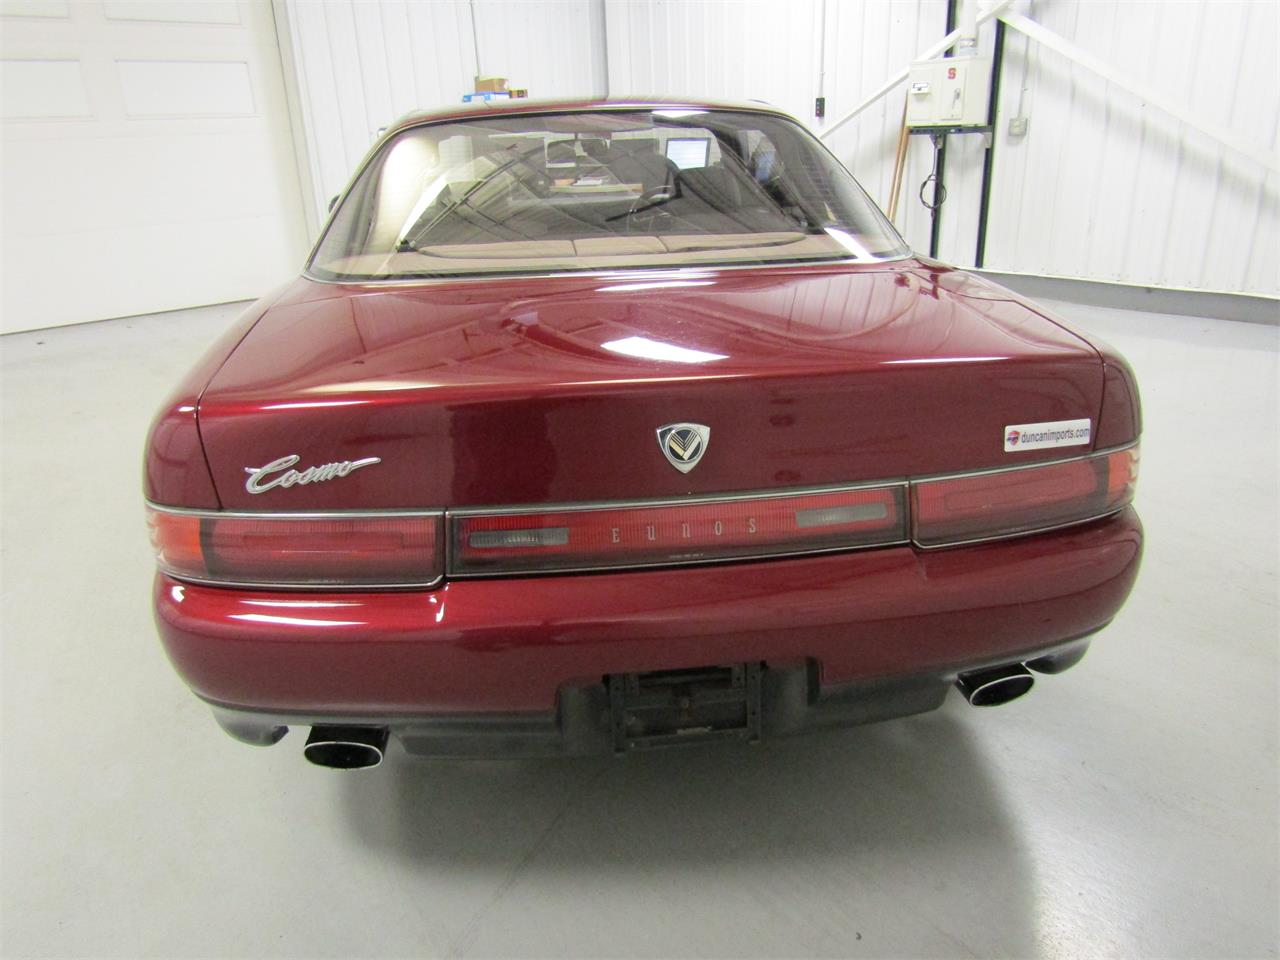 Large Picture of 1992 Eunos Cosmo Offered by Duncan Imports & Classic Cars - MZDH